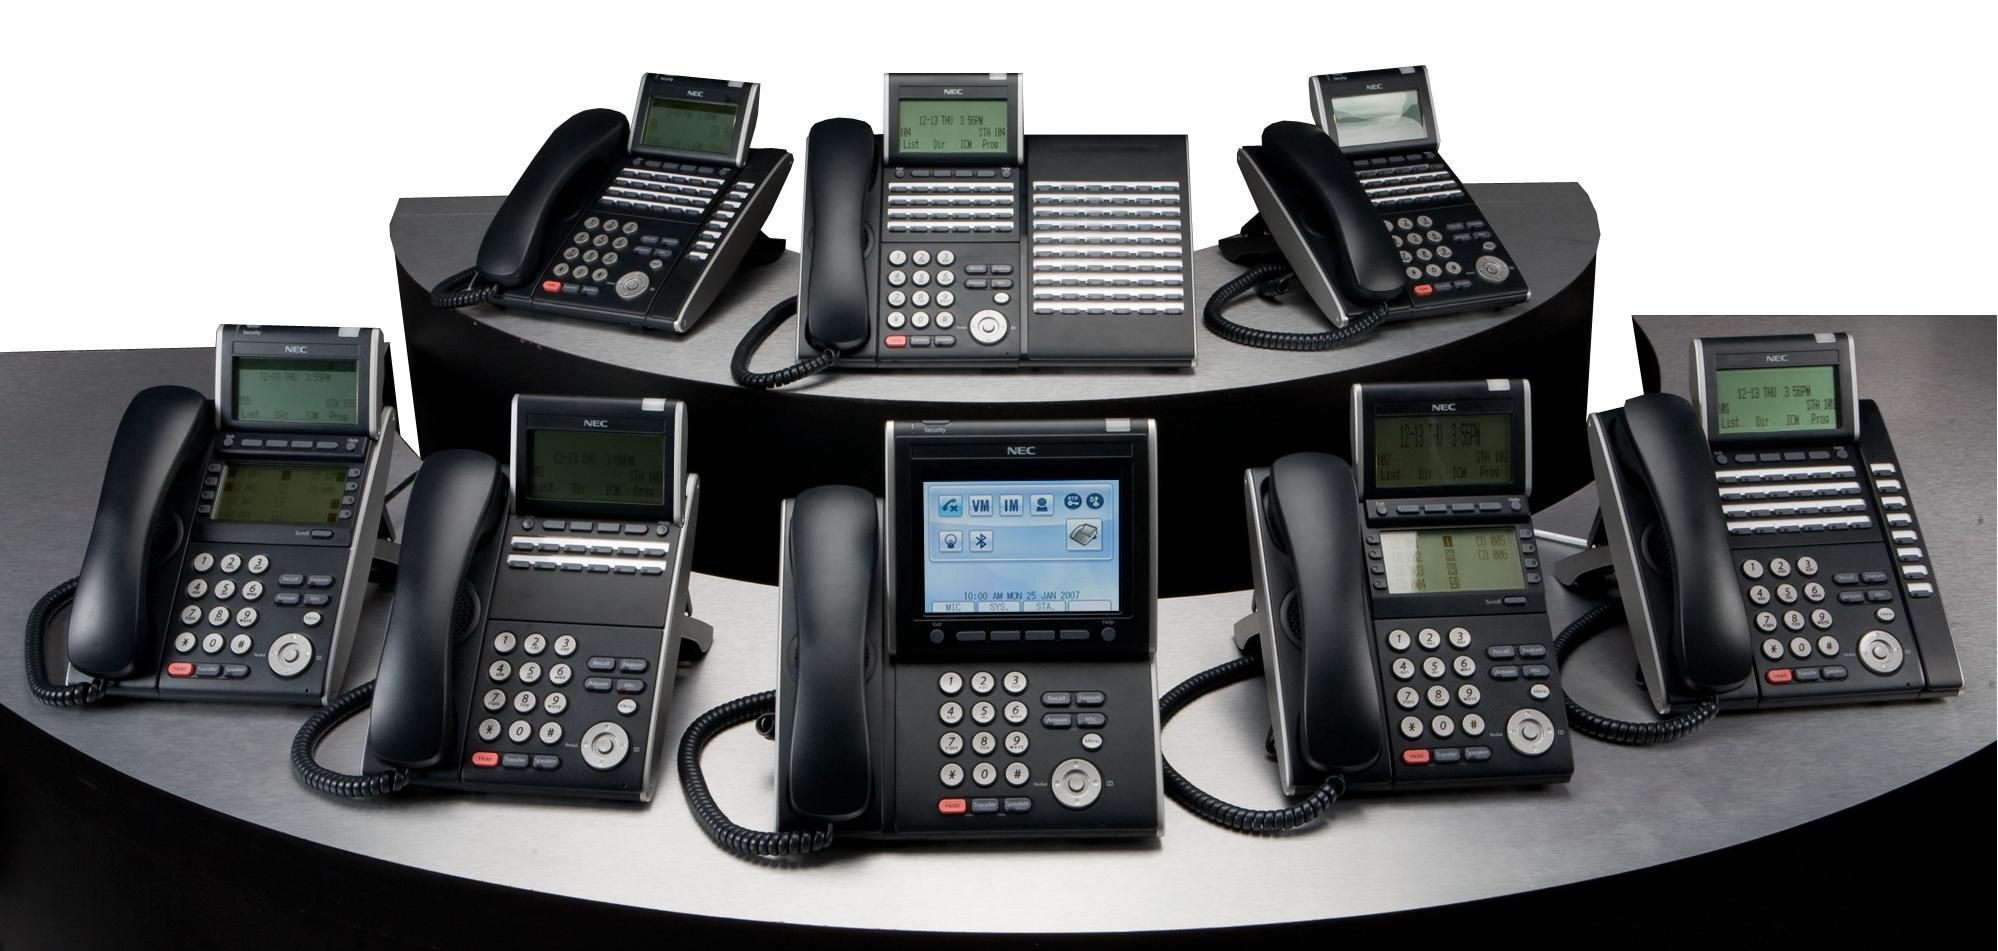 Command Phones Offer Small Business Telephone Systems U0026 Solutions For Your  Offices . Get Best Cost Effective Quote Or Call Us At 1300 811